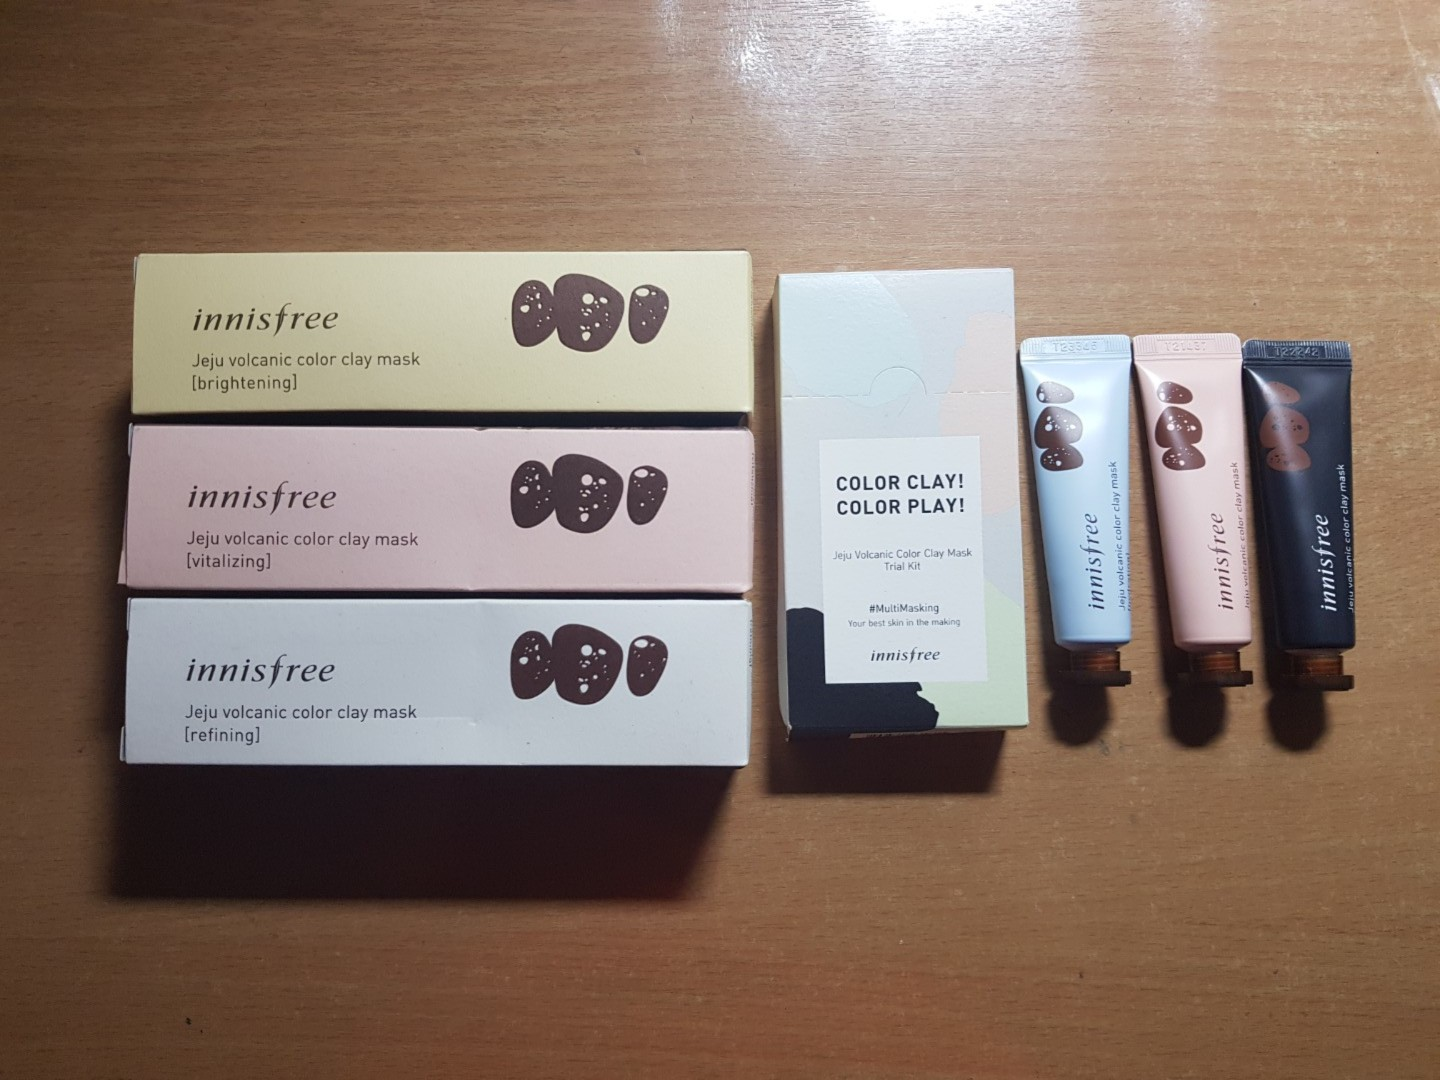 Innisfree Volcanic Colour Clay Mask 70ml Freebies Included Di Jeju Color Refining Photo